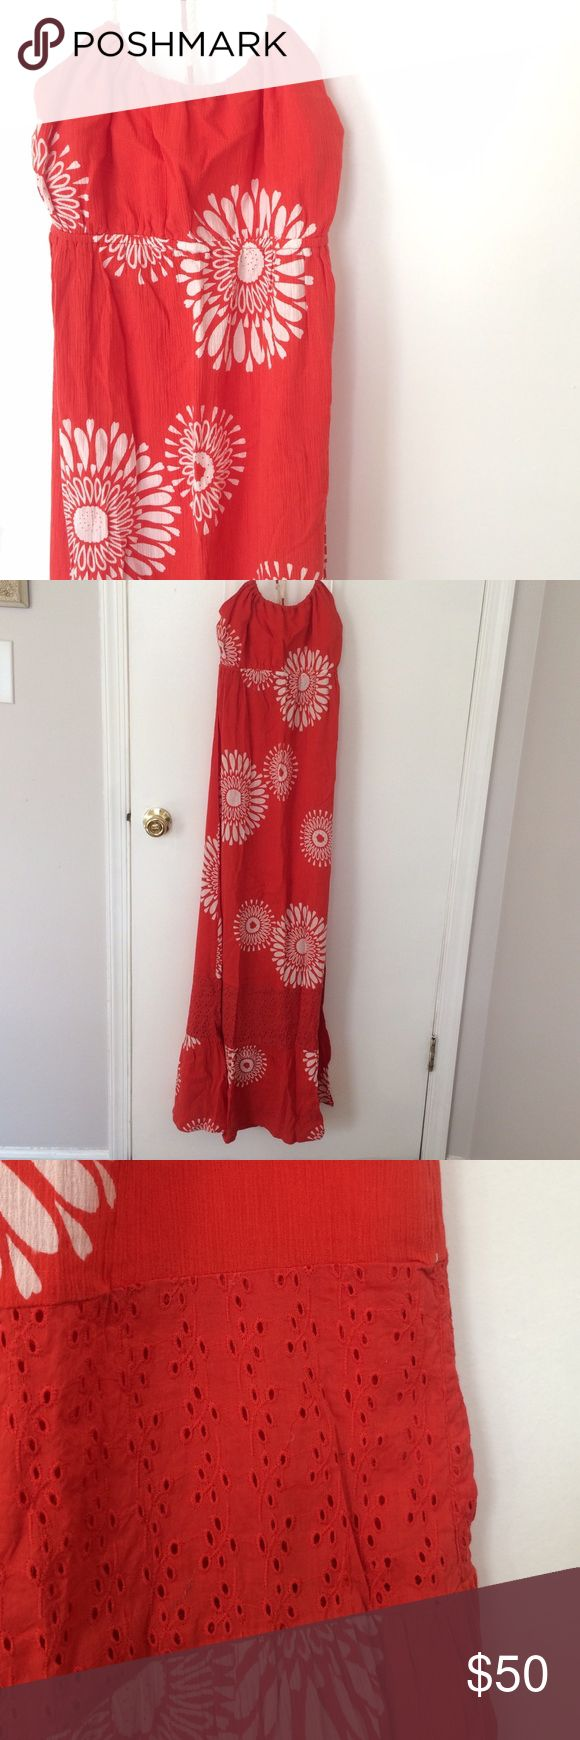 NWT Roxy Maxi Sun Dress Roxy maxi dress with halter neckline and light fabric. Color is a shade of burnt orange with white floral burst motif and some eyelet towards the bottom of the dress. New with tags!!! Never worn; ended up being too big. Size Small. Price is firm! Roxy Dresses Maxi